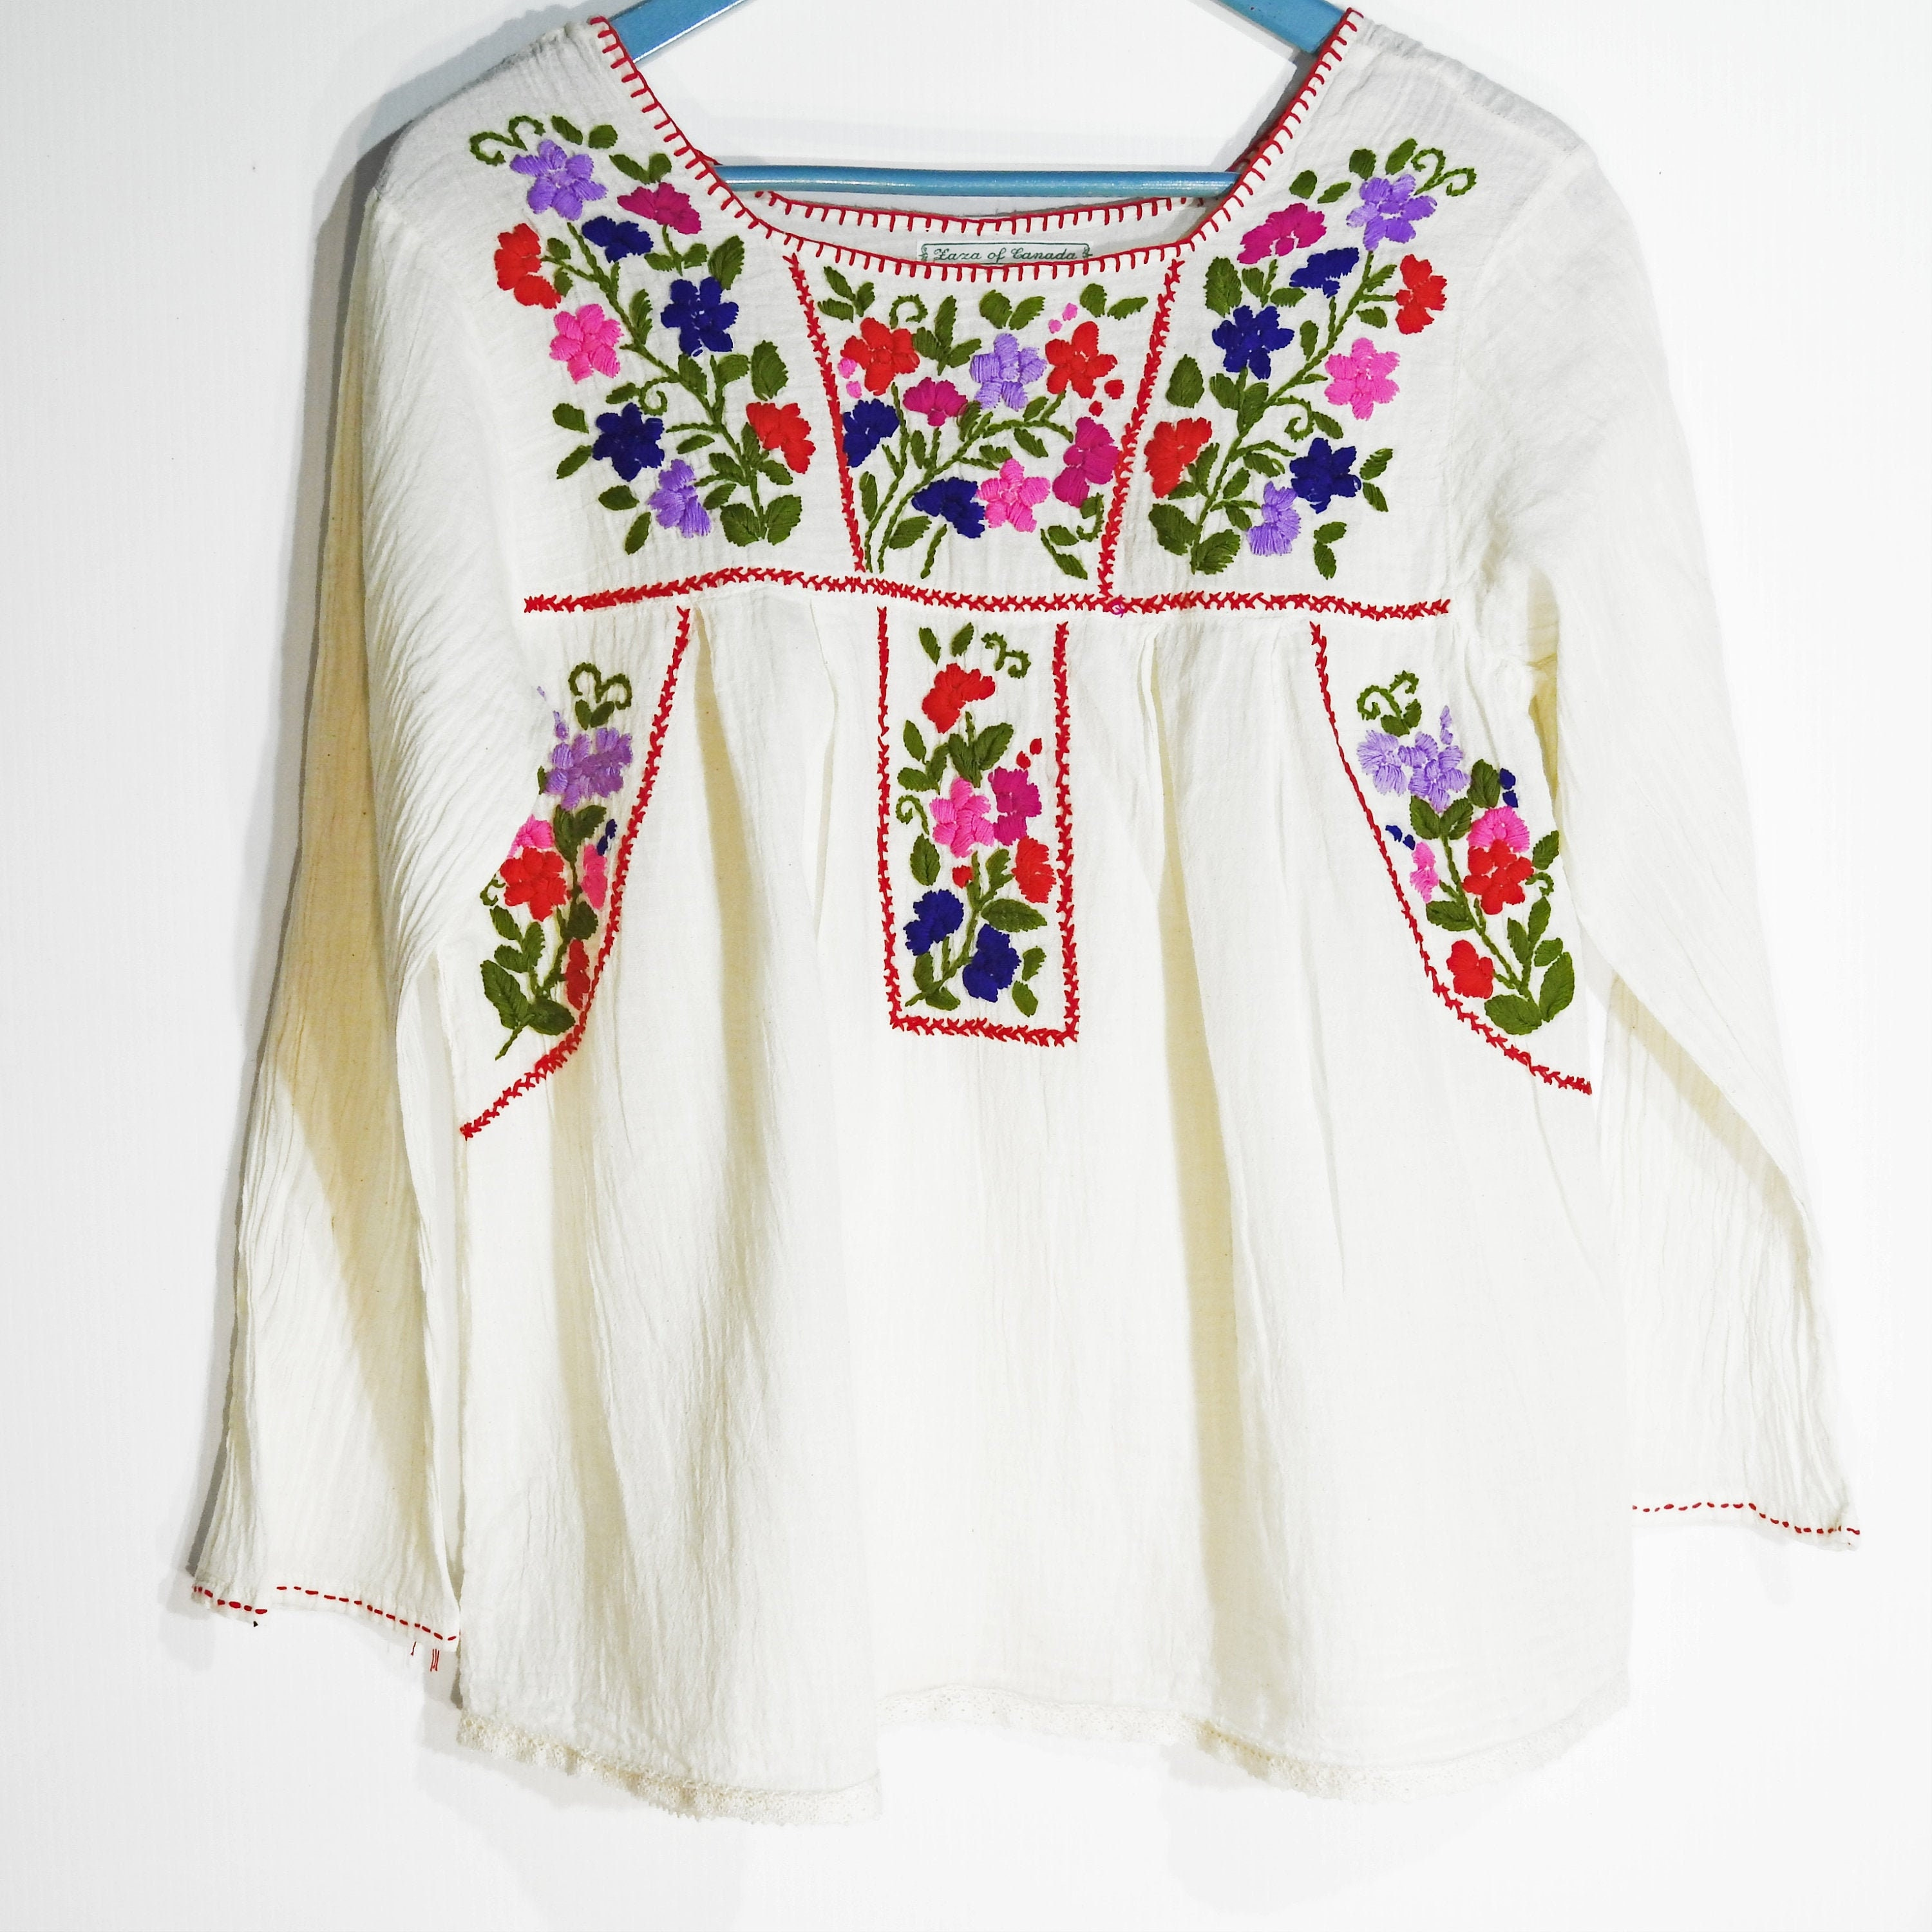 Hand Embroidered Mexican Blouse Authentic Mexican Top Dainty Floral Blouse Mexican Flower Top. Simple Floral Detail Silk Thread Blouse